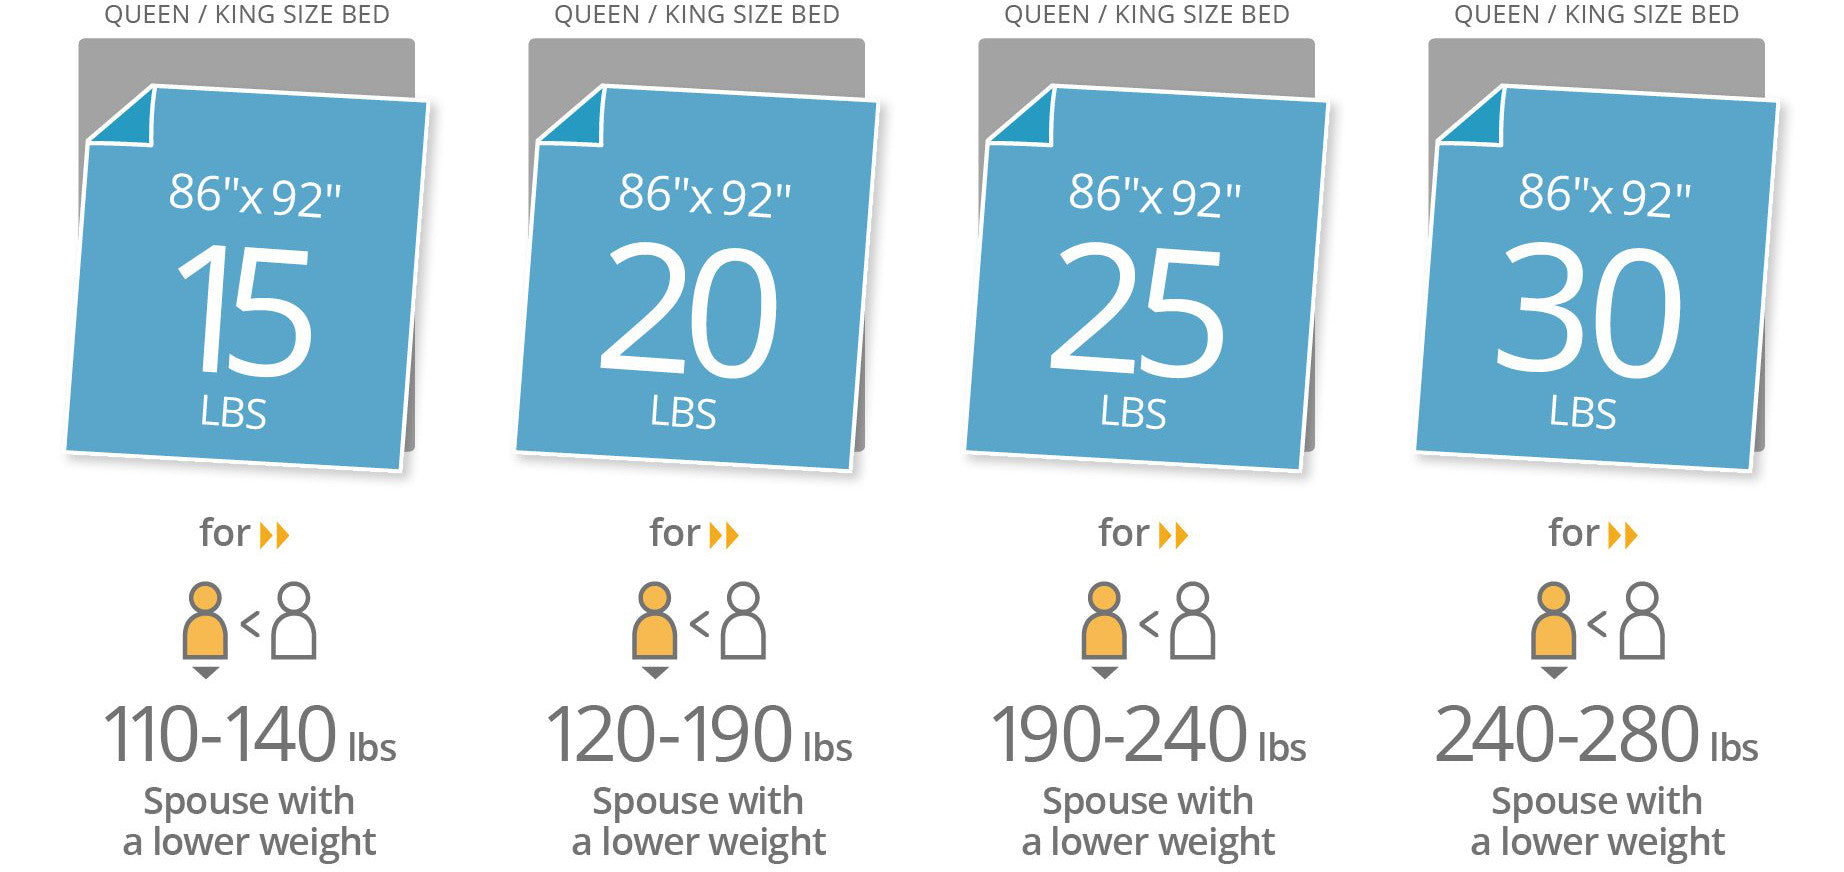 Queen & King blanket size guide